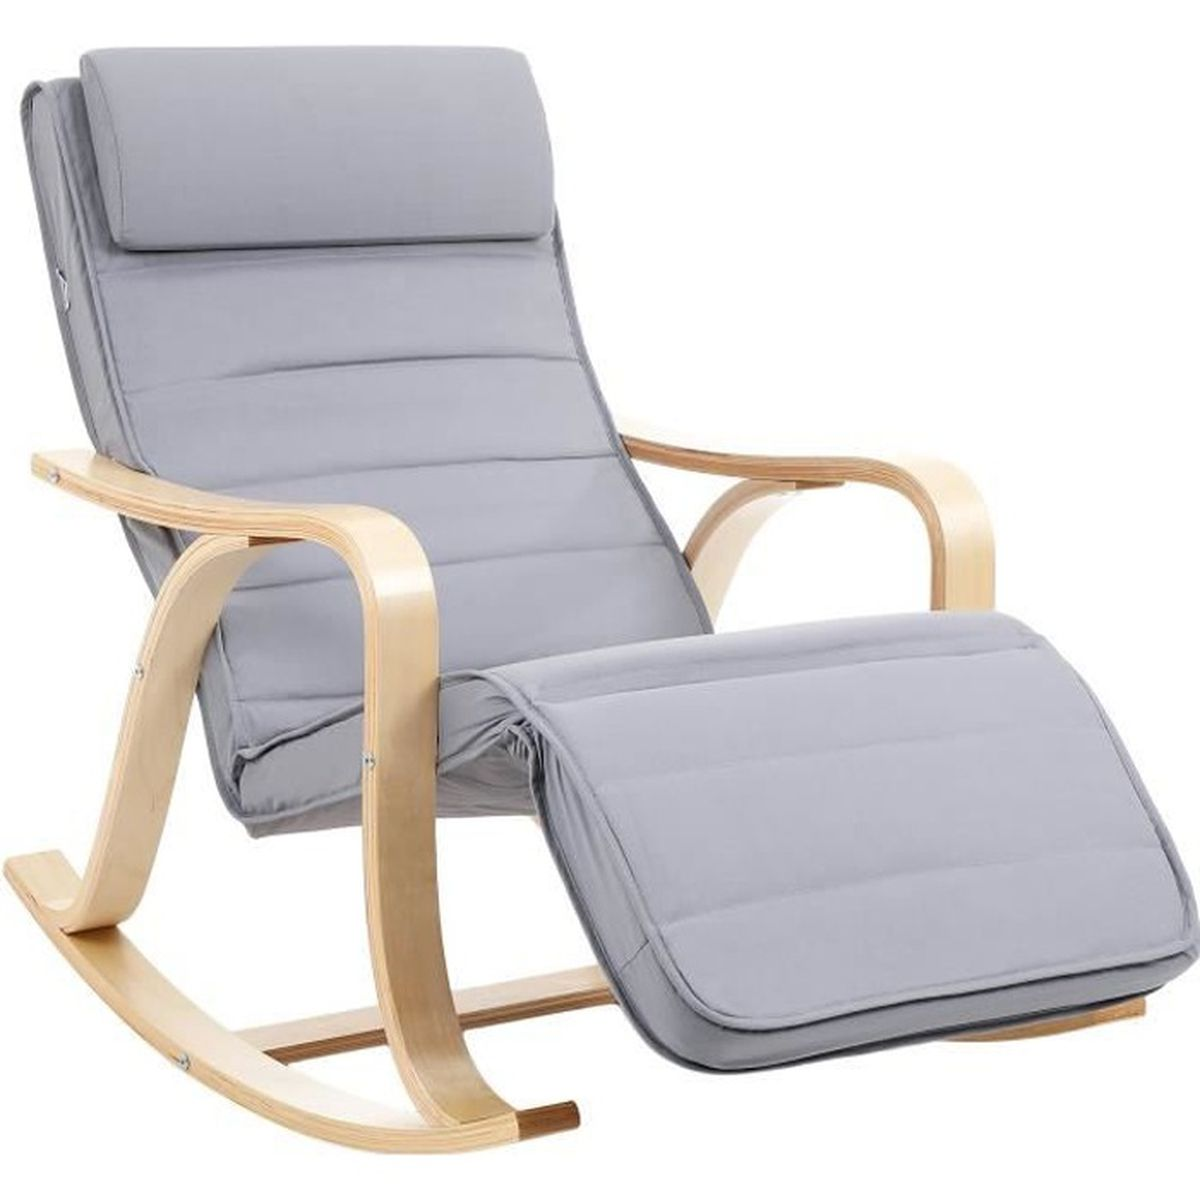 Stunning Rocking Chair Canadien Contemporary Joshkrajcikus - Fauteuil rocking chair design